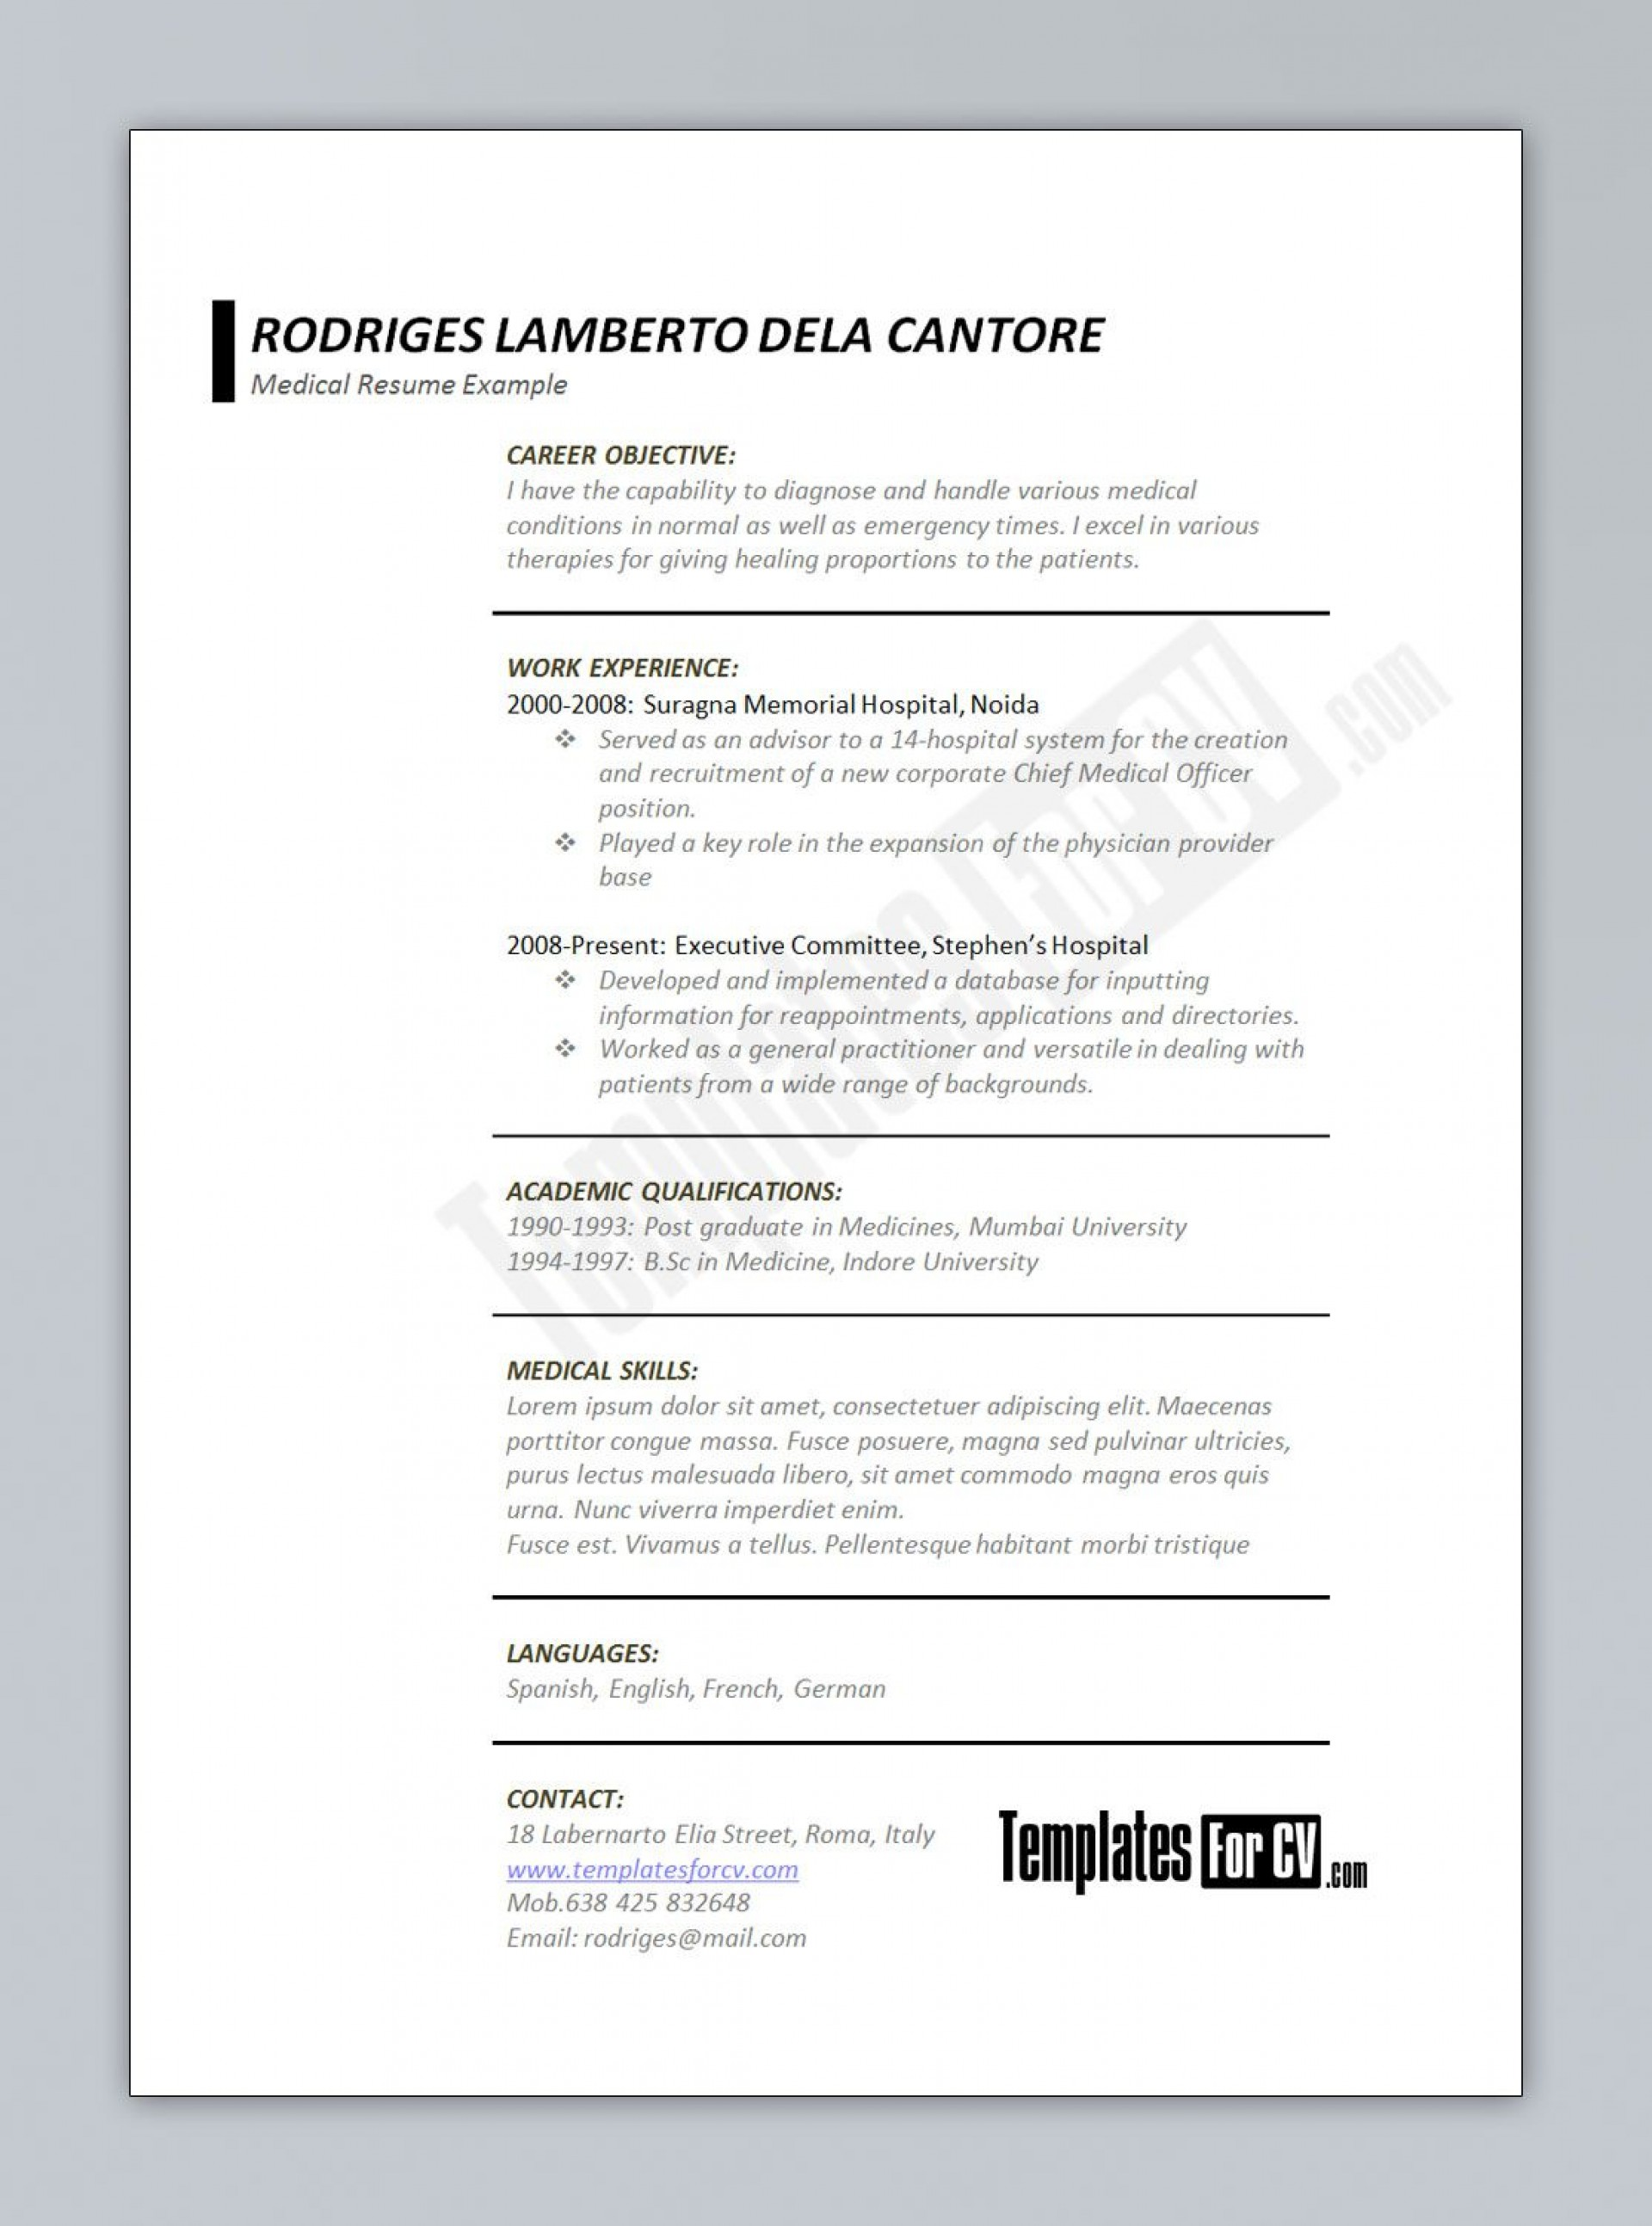 008 Outstanding Medical Resume Template Free Idea  Receptionist Cv Coder1920